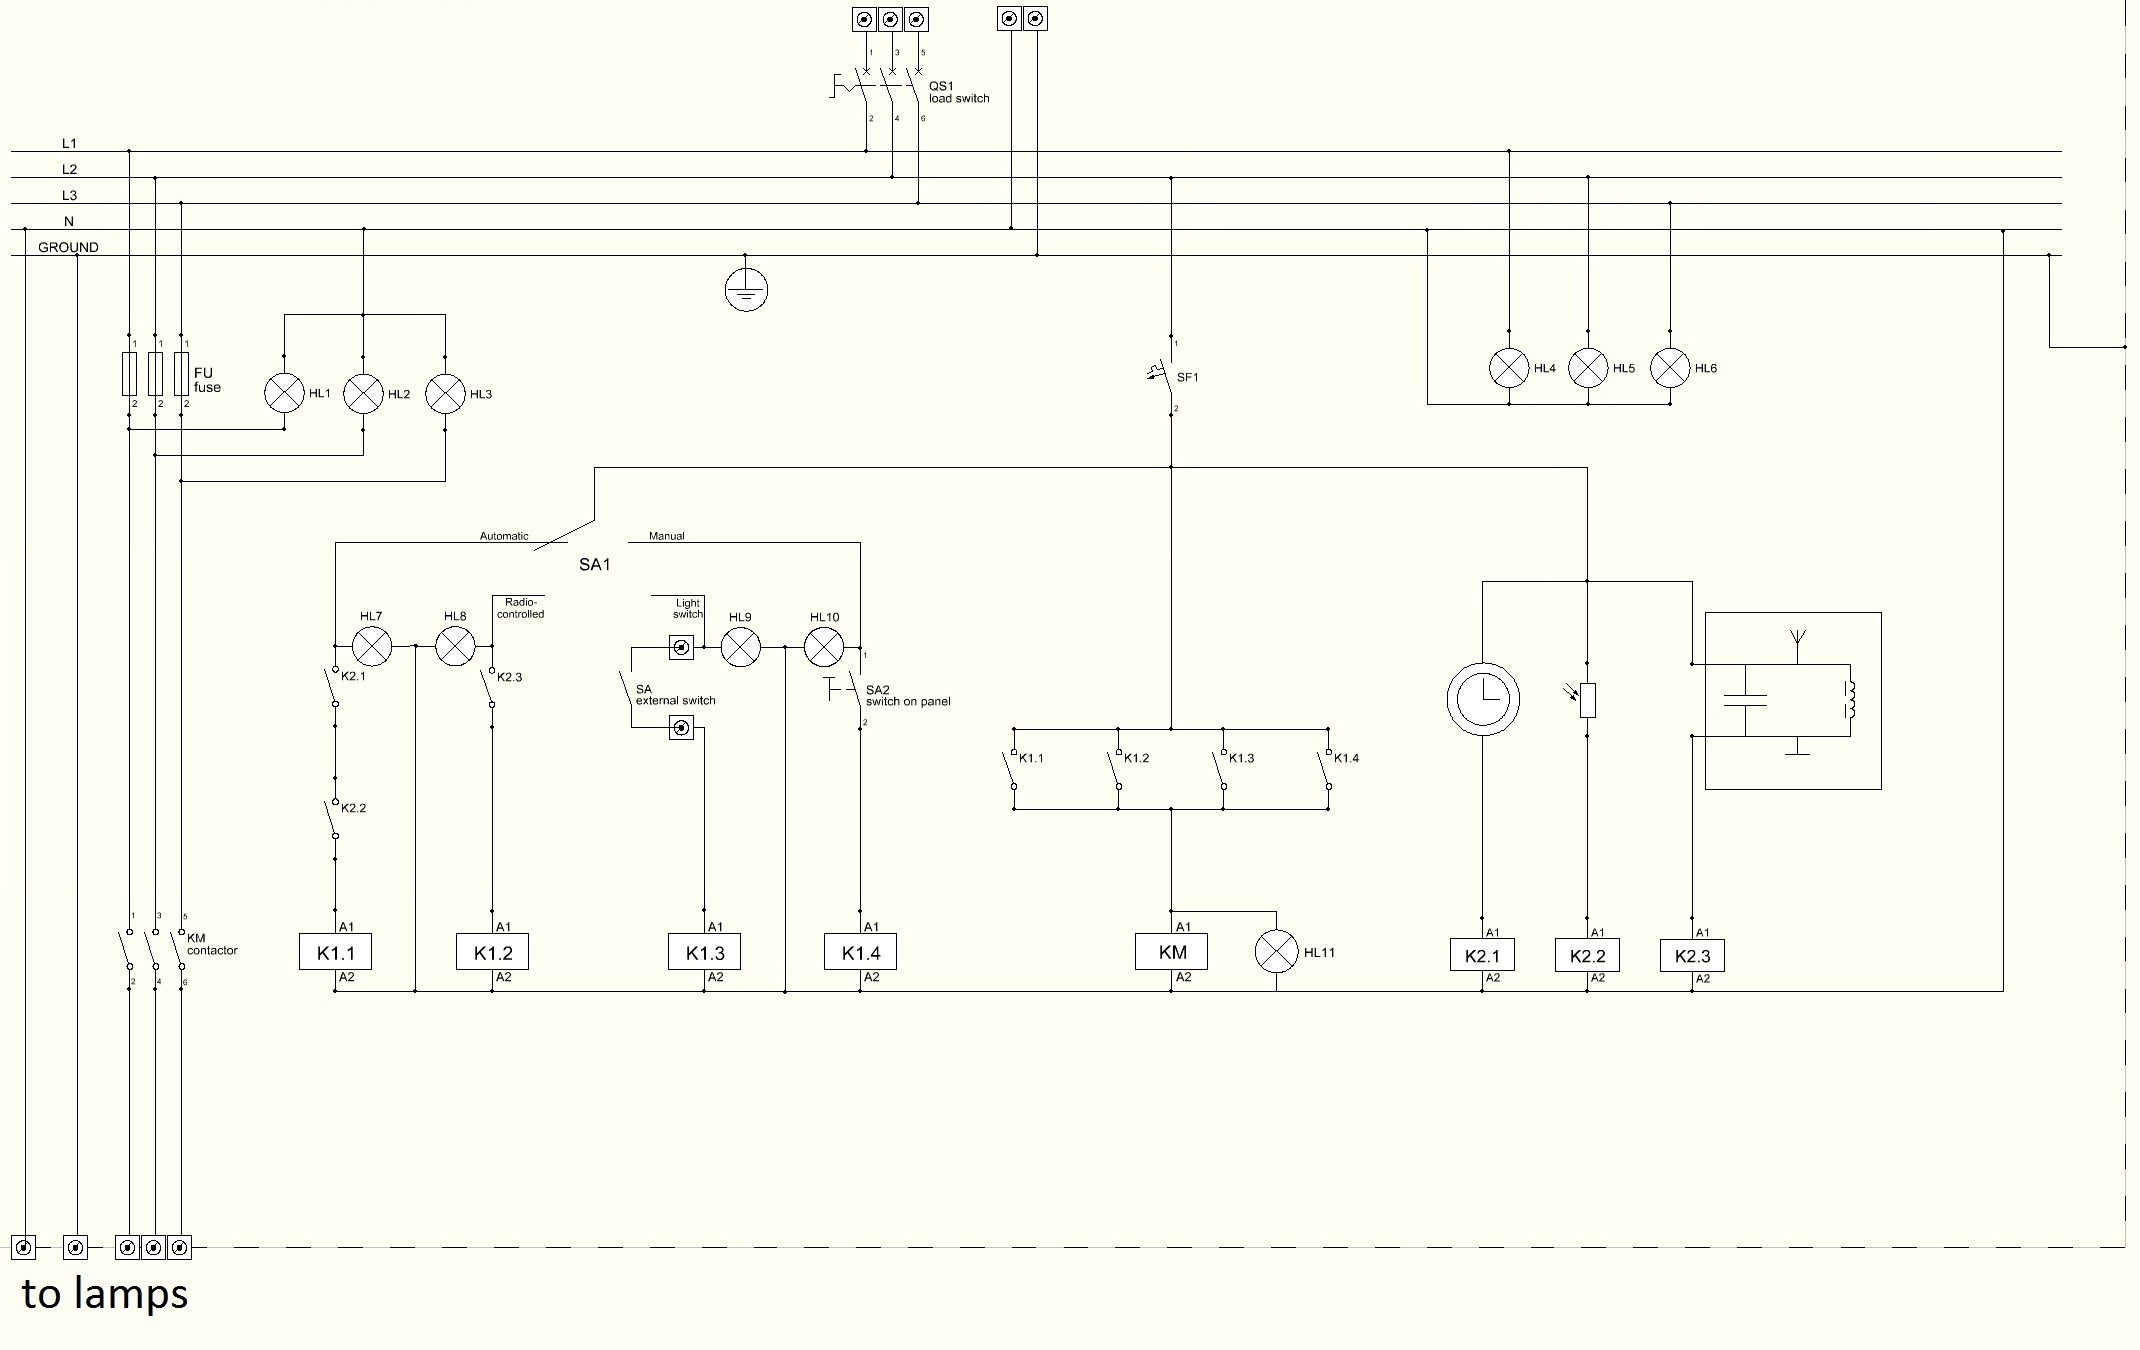 Nlight Lithonia Lighting Wiring Diagram Electrical Diagrams Direct Luminaire